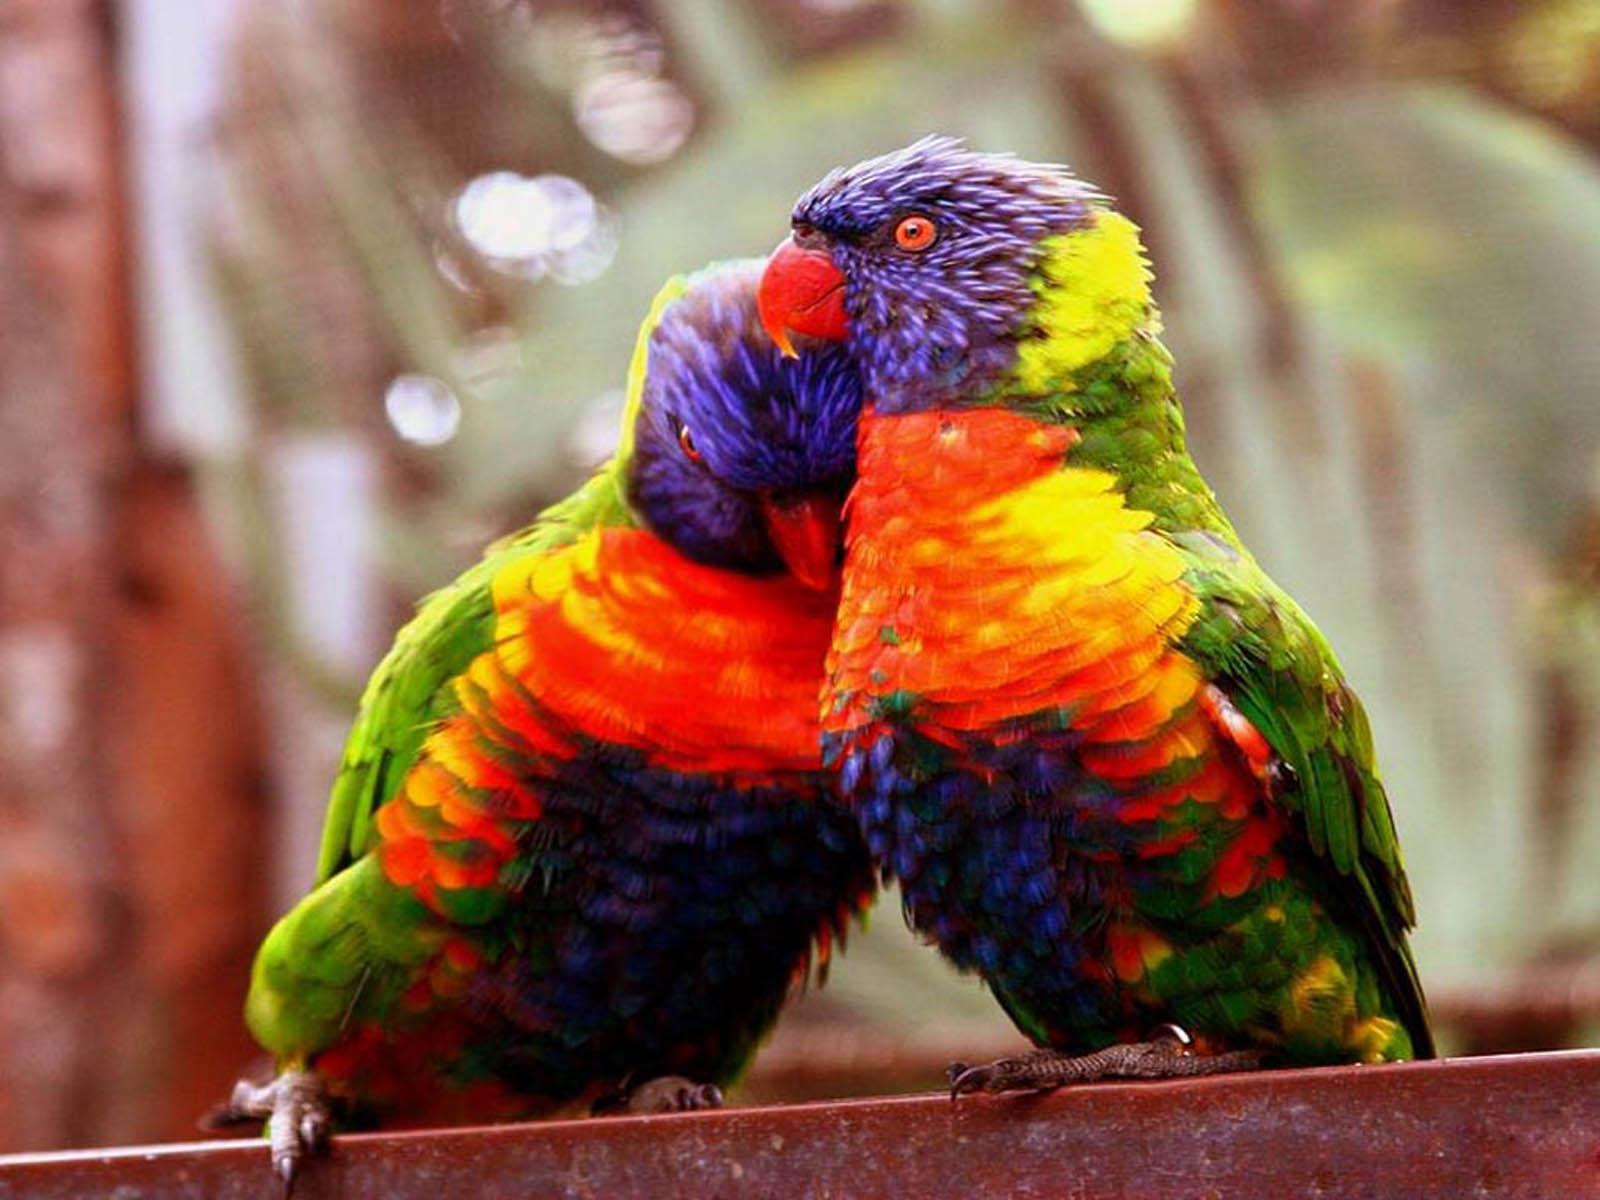 Tag: Love Birds Wallpapers, Backgrounds, Photos,Images and Pictures